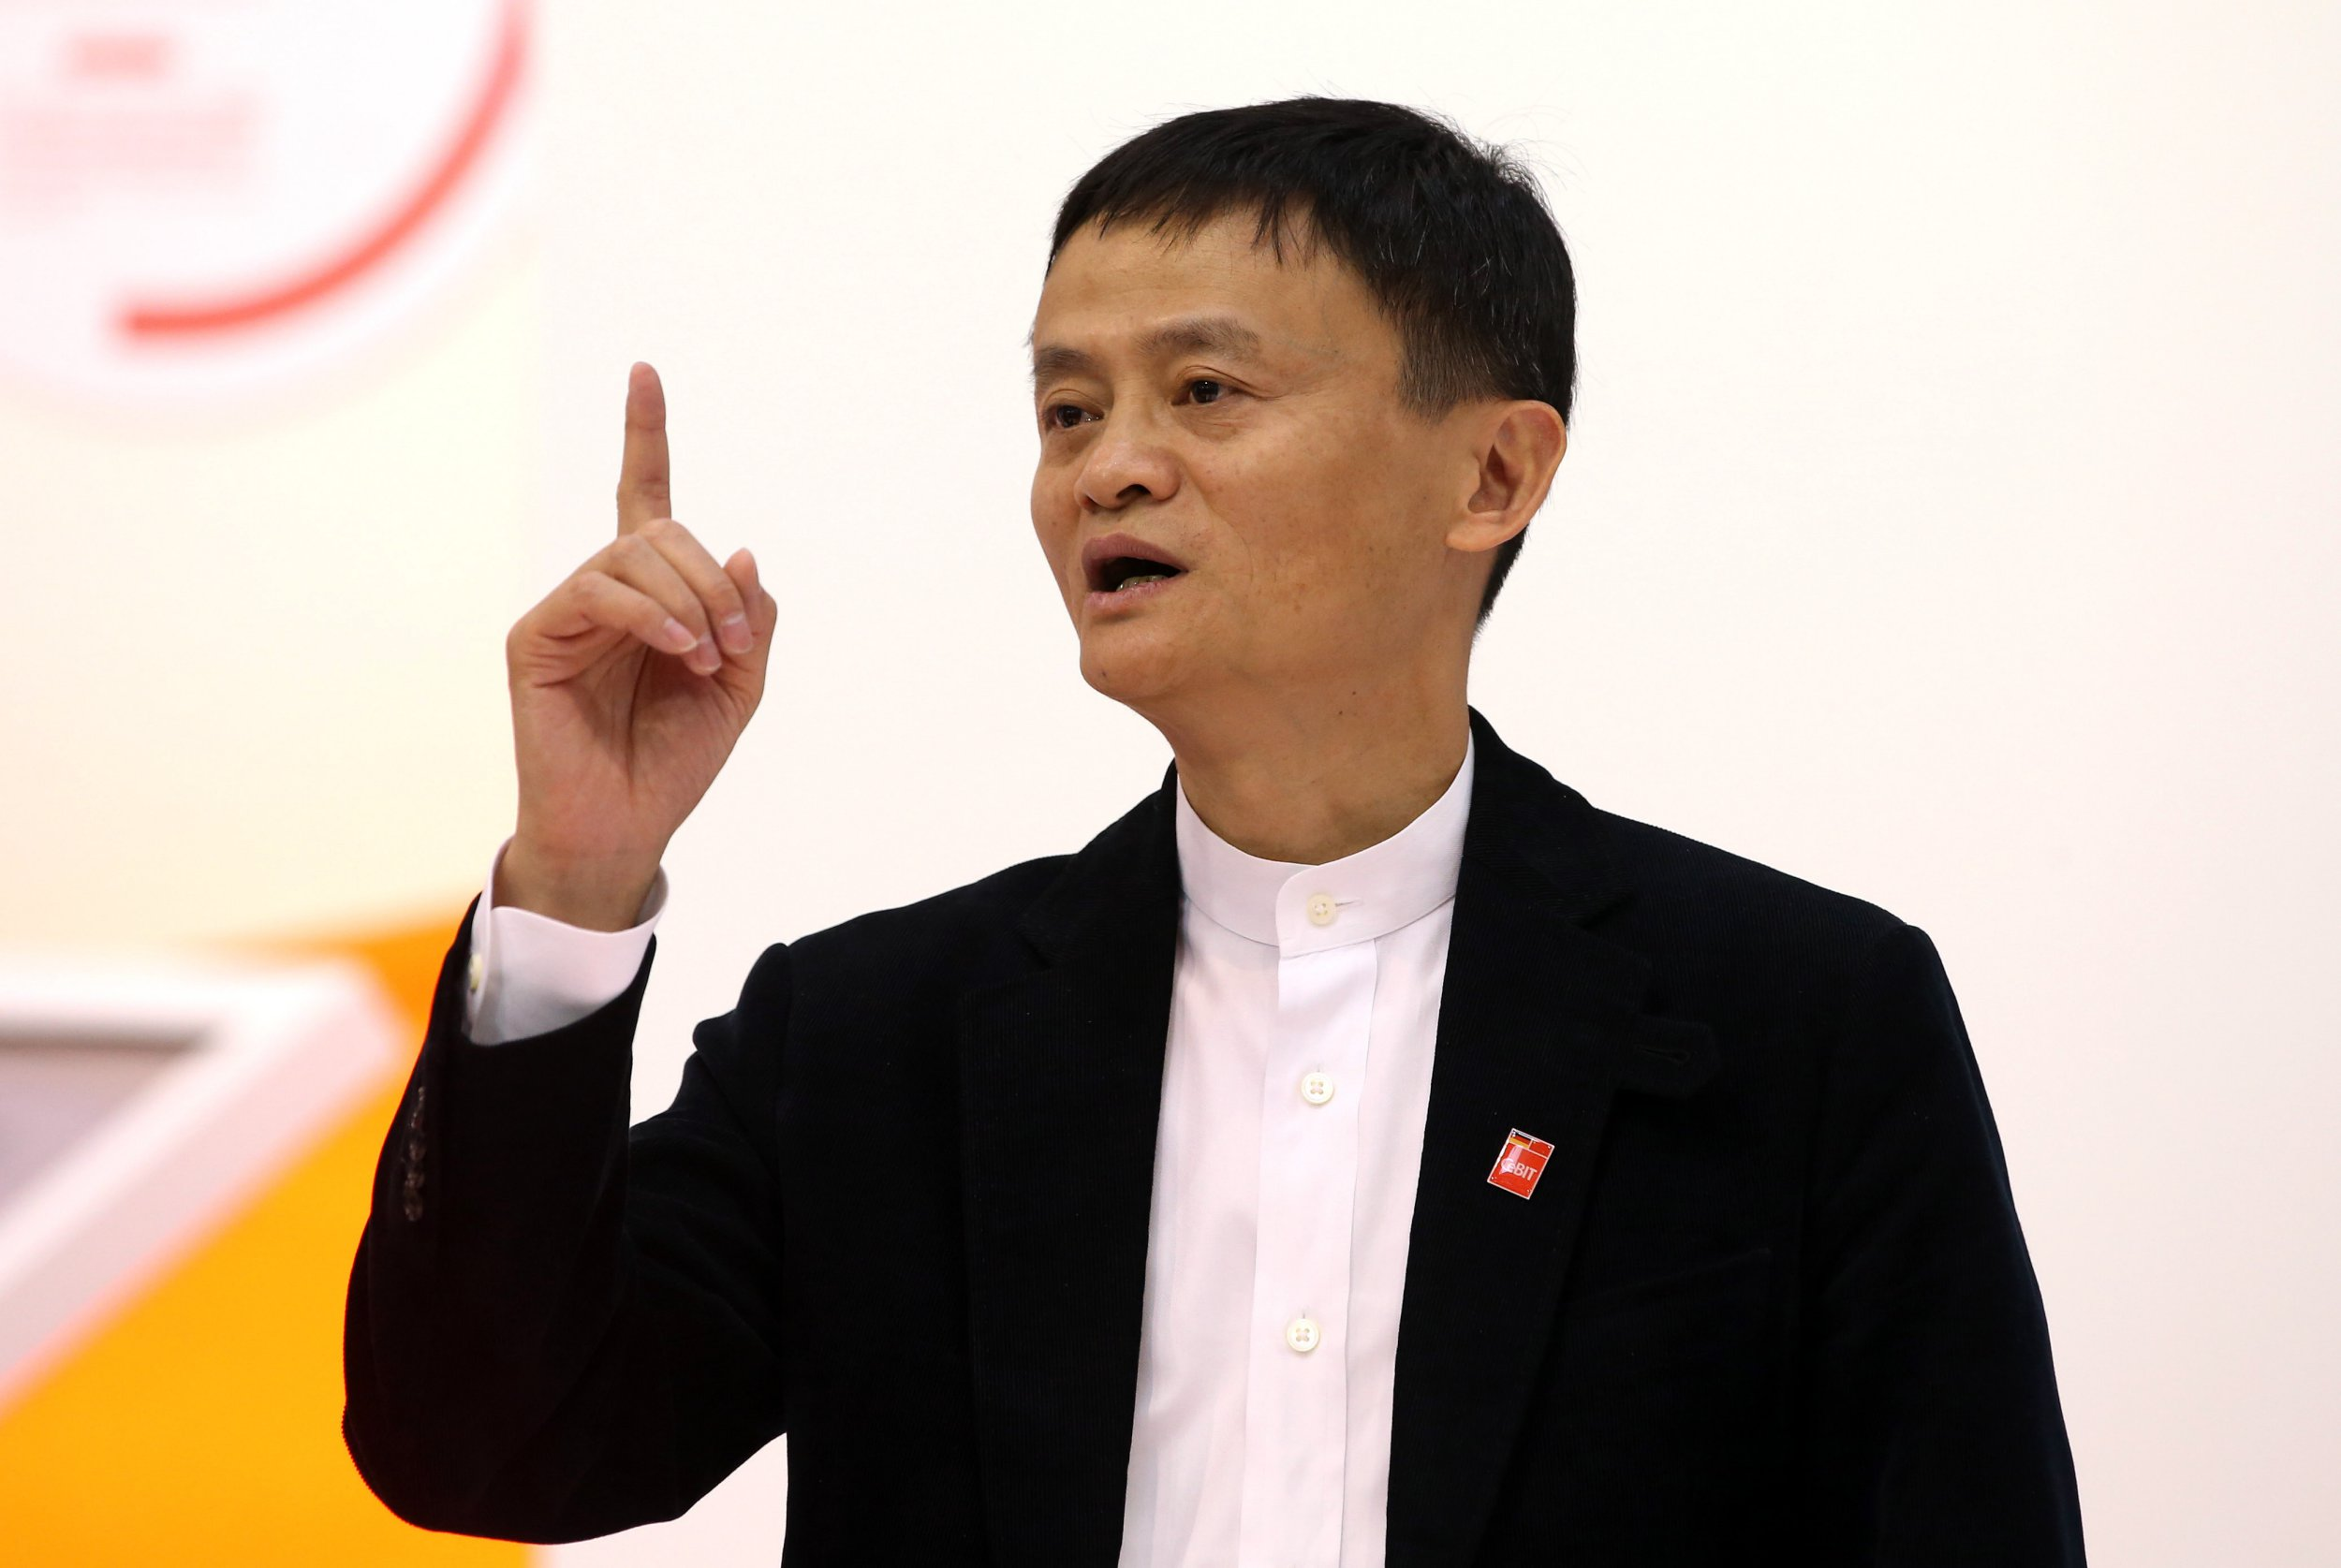 Jack Ma, founder and CEO of Chinese internet company Alibaba Group, stands at the exhibition stand of his company at the computer fair CeBIT in Hanover, Germany, 16 March 2015. The world's biggest computer fair CeBIT runs until 20 March 2015, partner country is China. PHOTO: CHRISTIAN??CHARISIUS/dpa